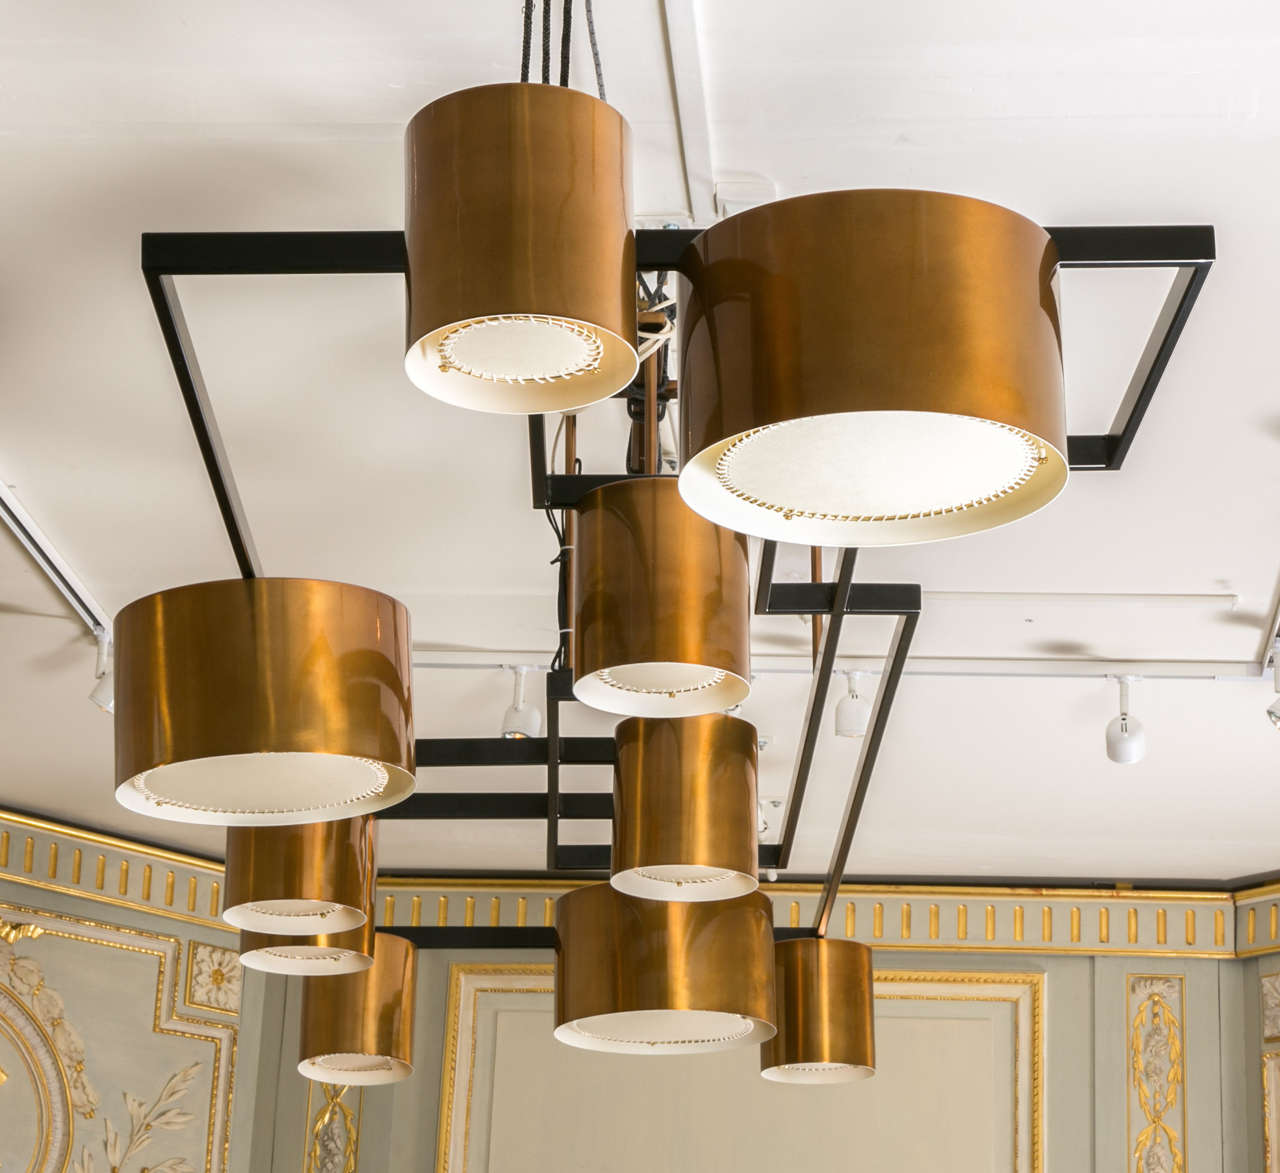 Large Modernist Copper Chandelier In Excellent Condition For Sale In Saint-Ouen (PARIS), FR